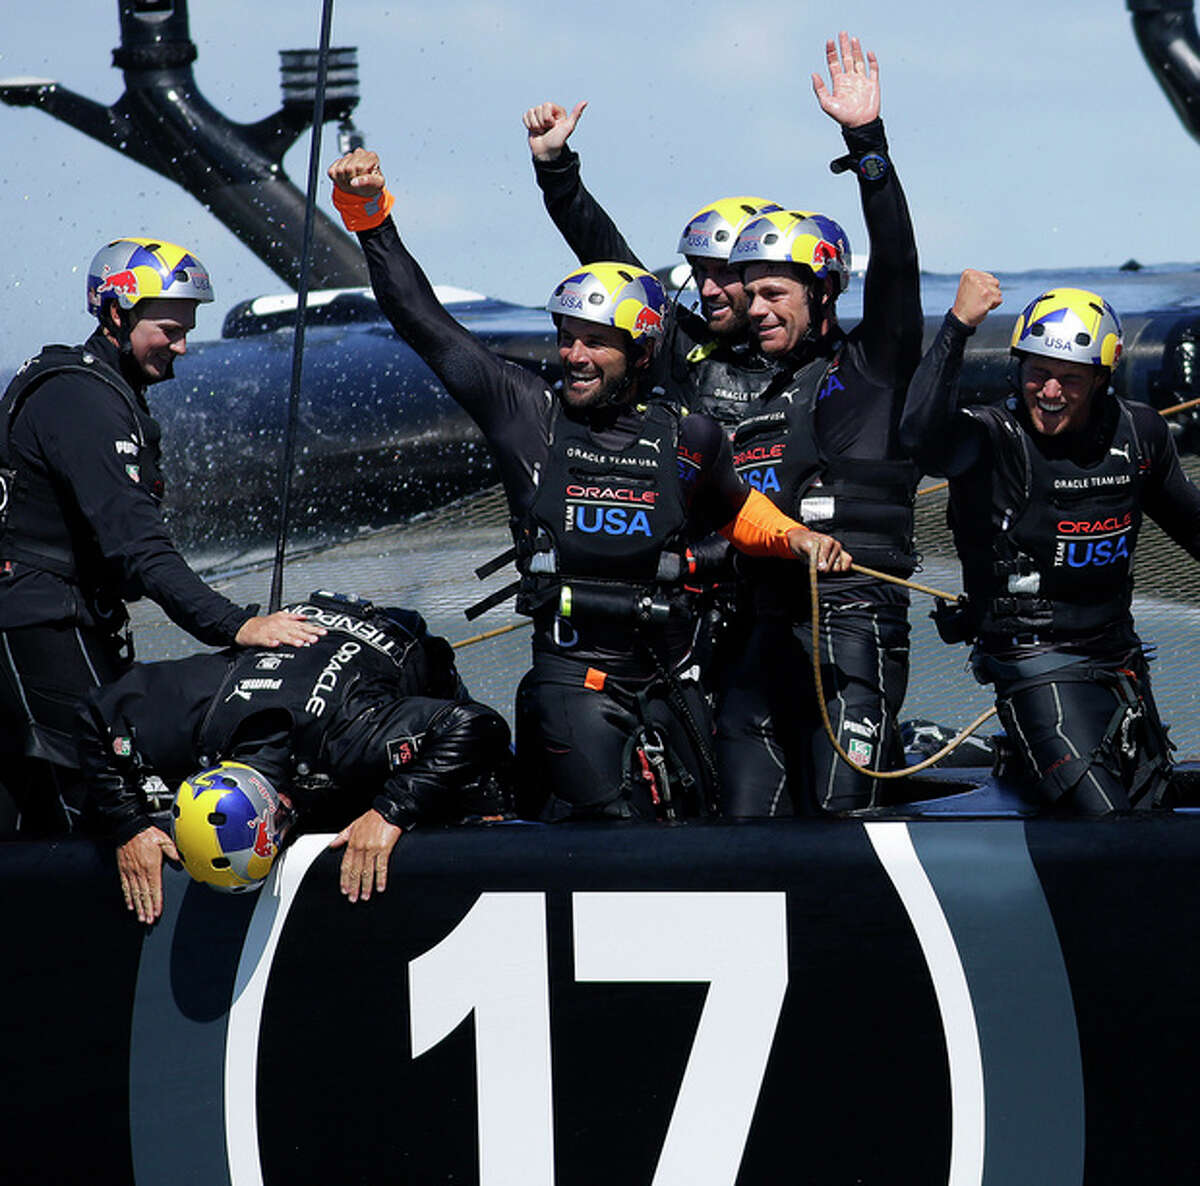 Oracle Team USA crew celebrate as grinder Simeon Tienpont, second fromleft, leans over the side to kiss the boat after winning the 19th race against Emirates Team New Zealand to win the America's Cup sailing event Wednesday, Sept. 25, 2013, in San Francisco. (AP Photo/Ben Margot)